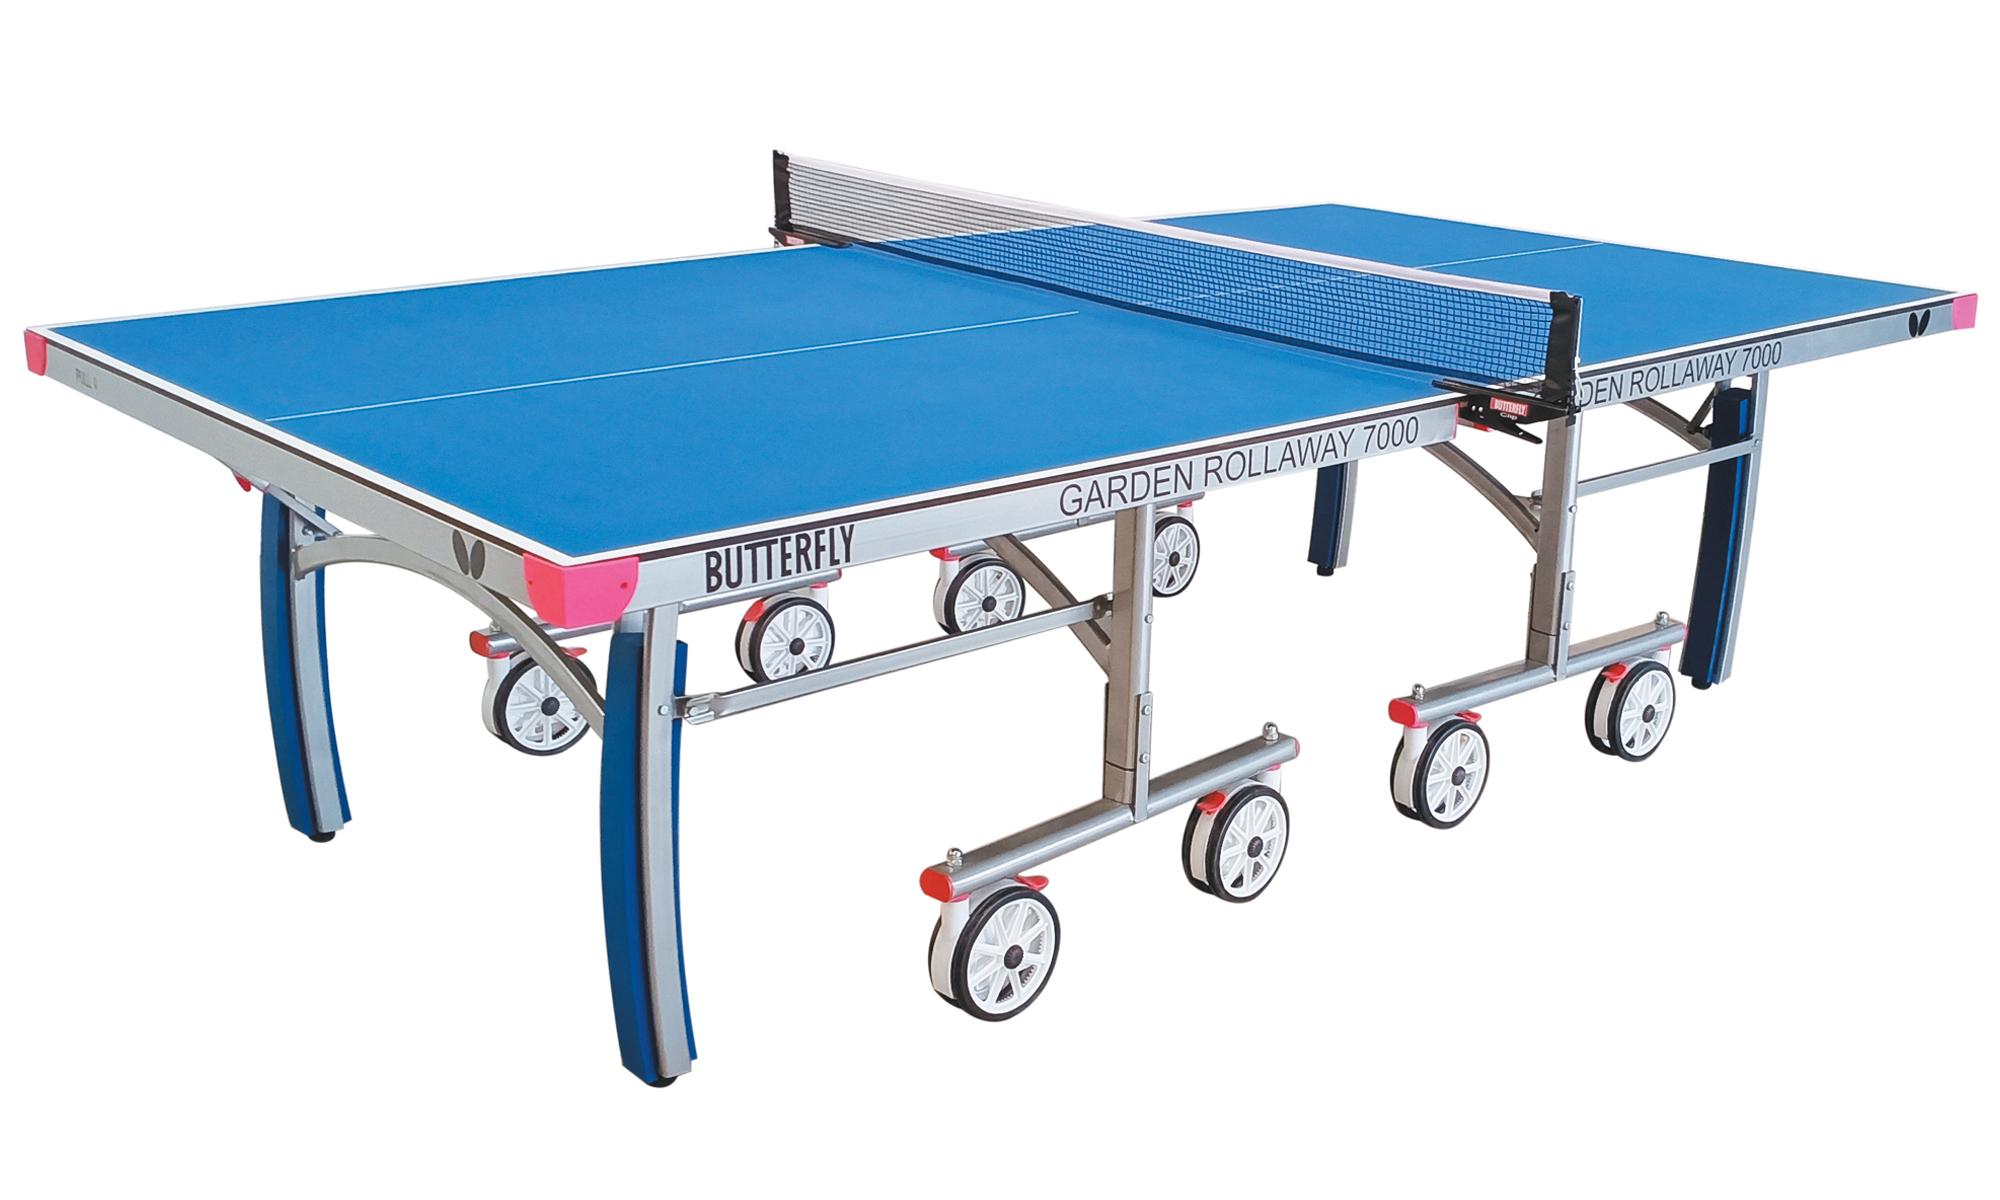 Butterfly Garden Rollaway 7000 Outdoor Table Tennis Table